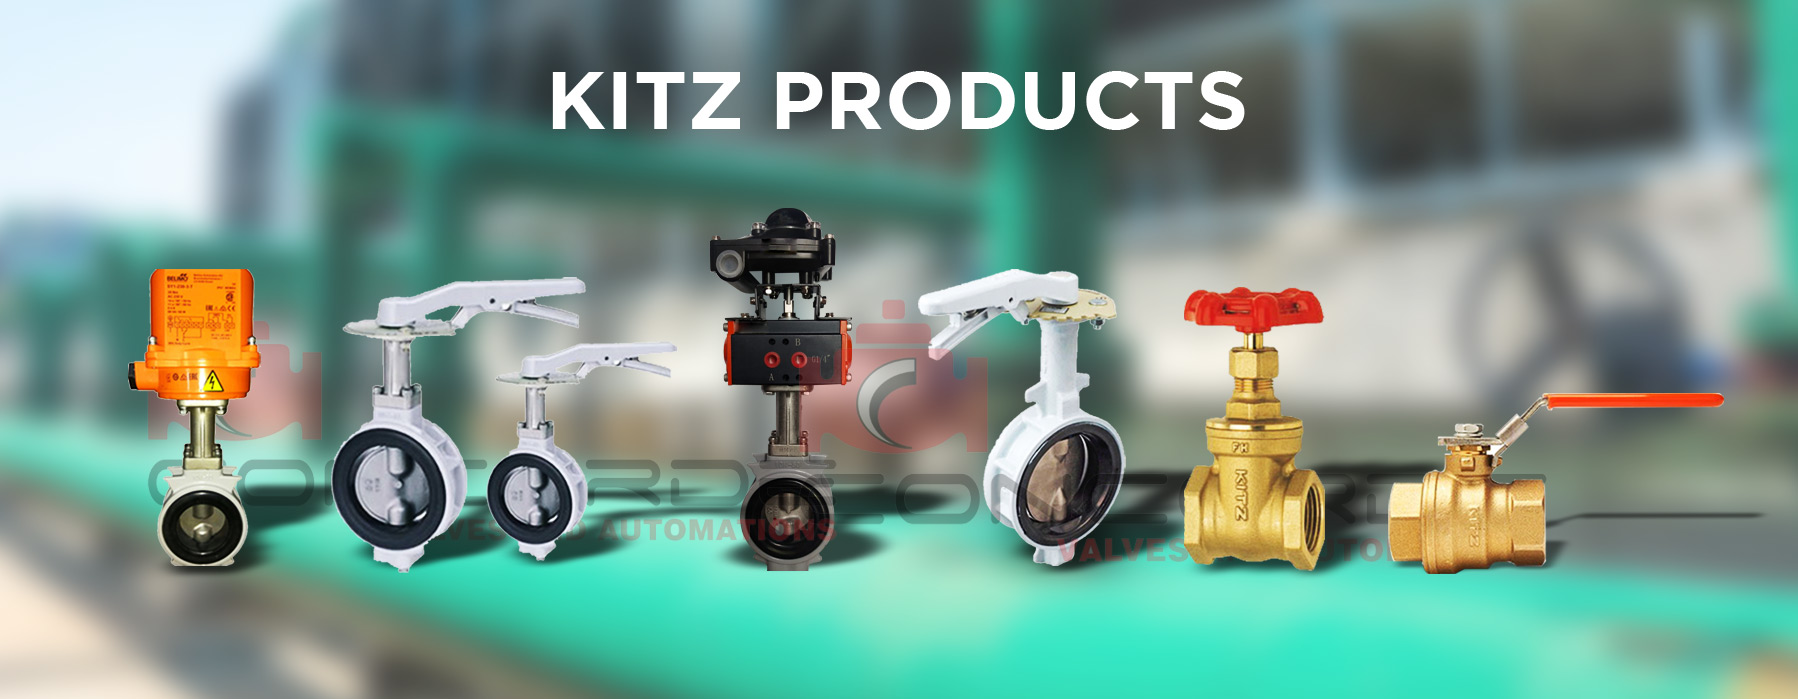 kitz valves distributors